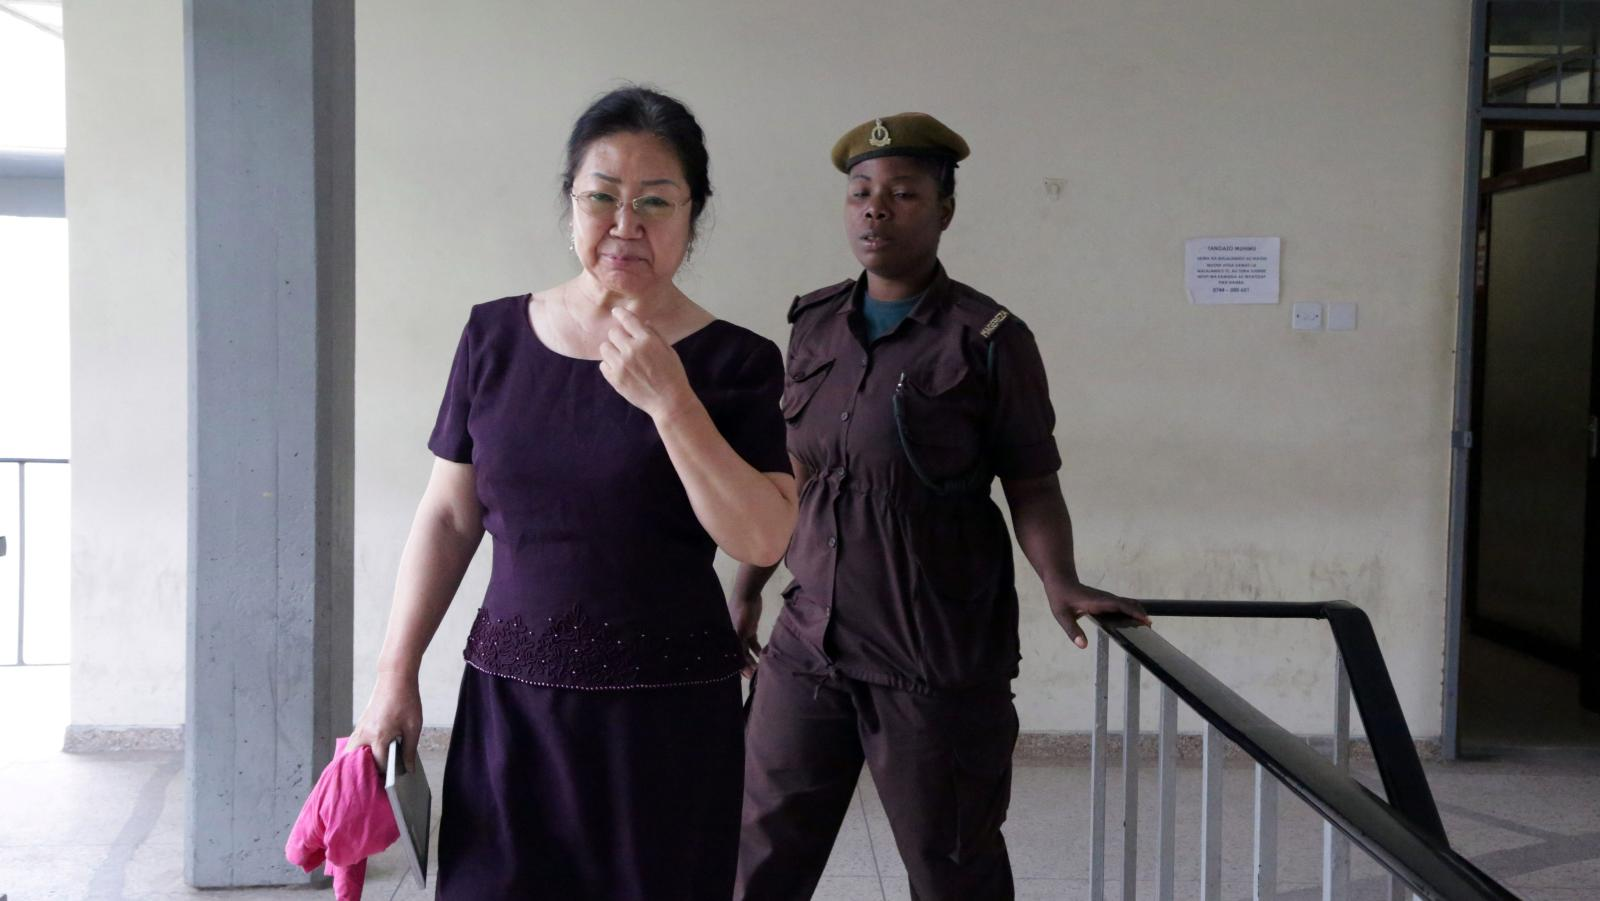 Chinese Ivory Queen has been sentenced to 15 years in a Tanzanian prison